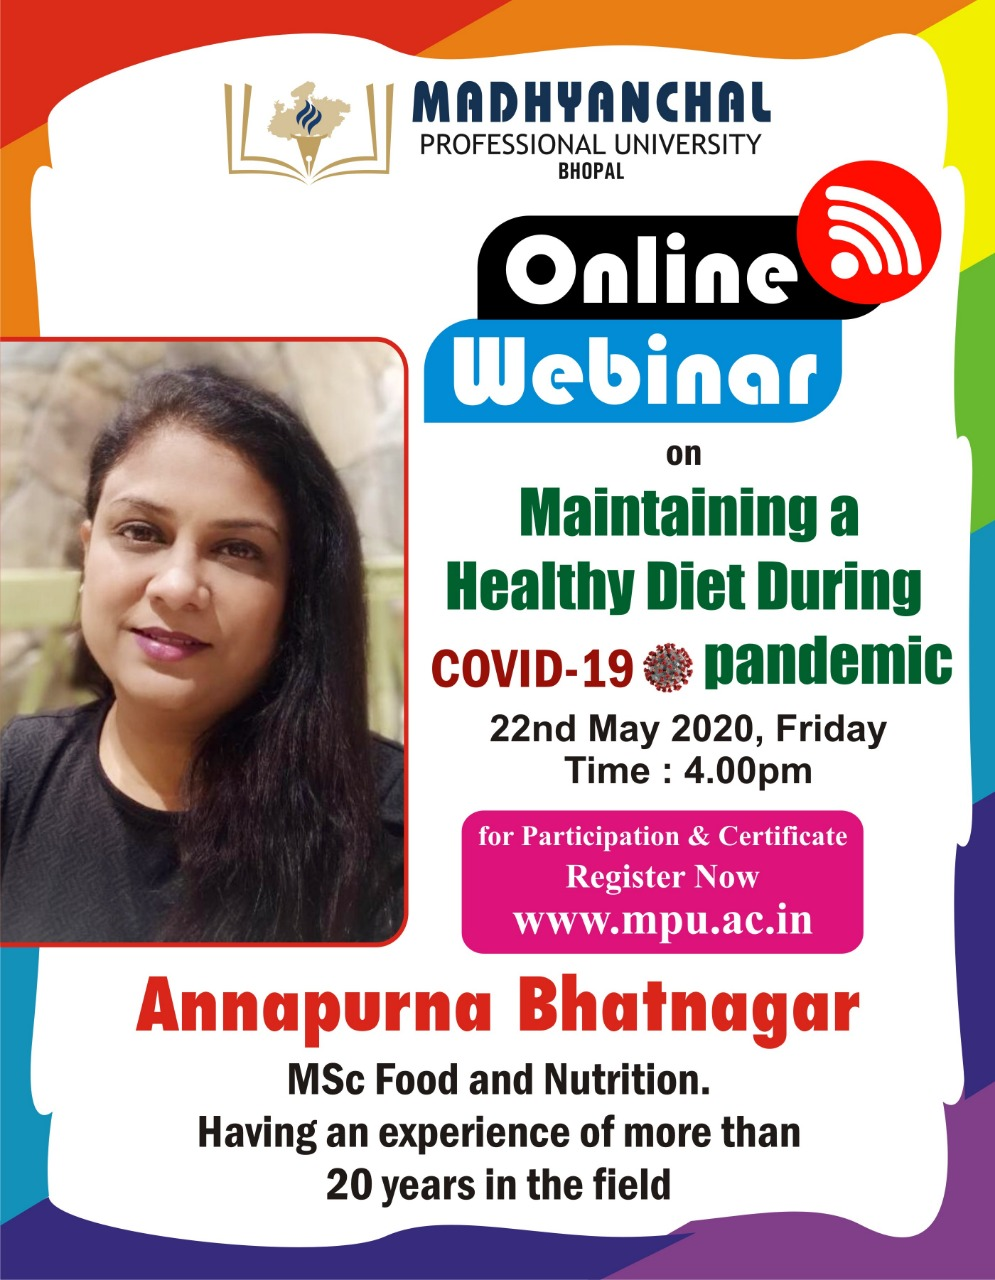 Webinar on Healthy Eating During COVID-19